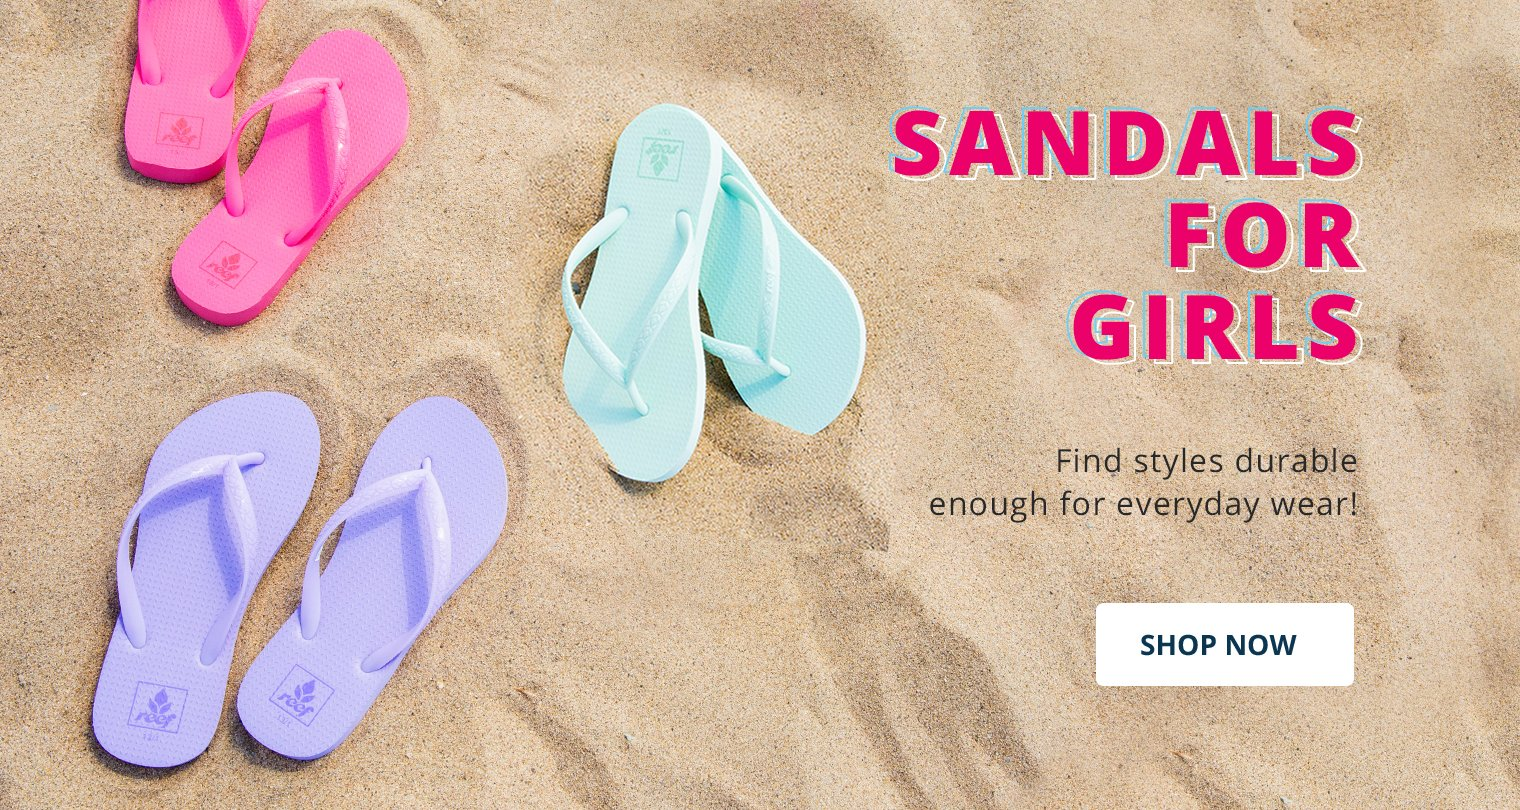 Sandals for Girls. Find styles durable enough for everyday wear! Shop Now.